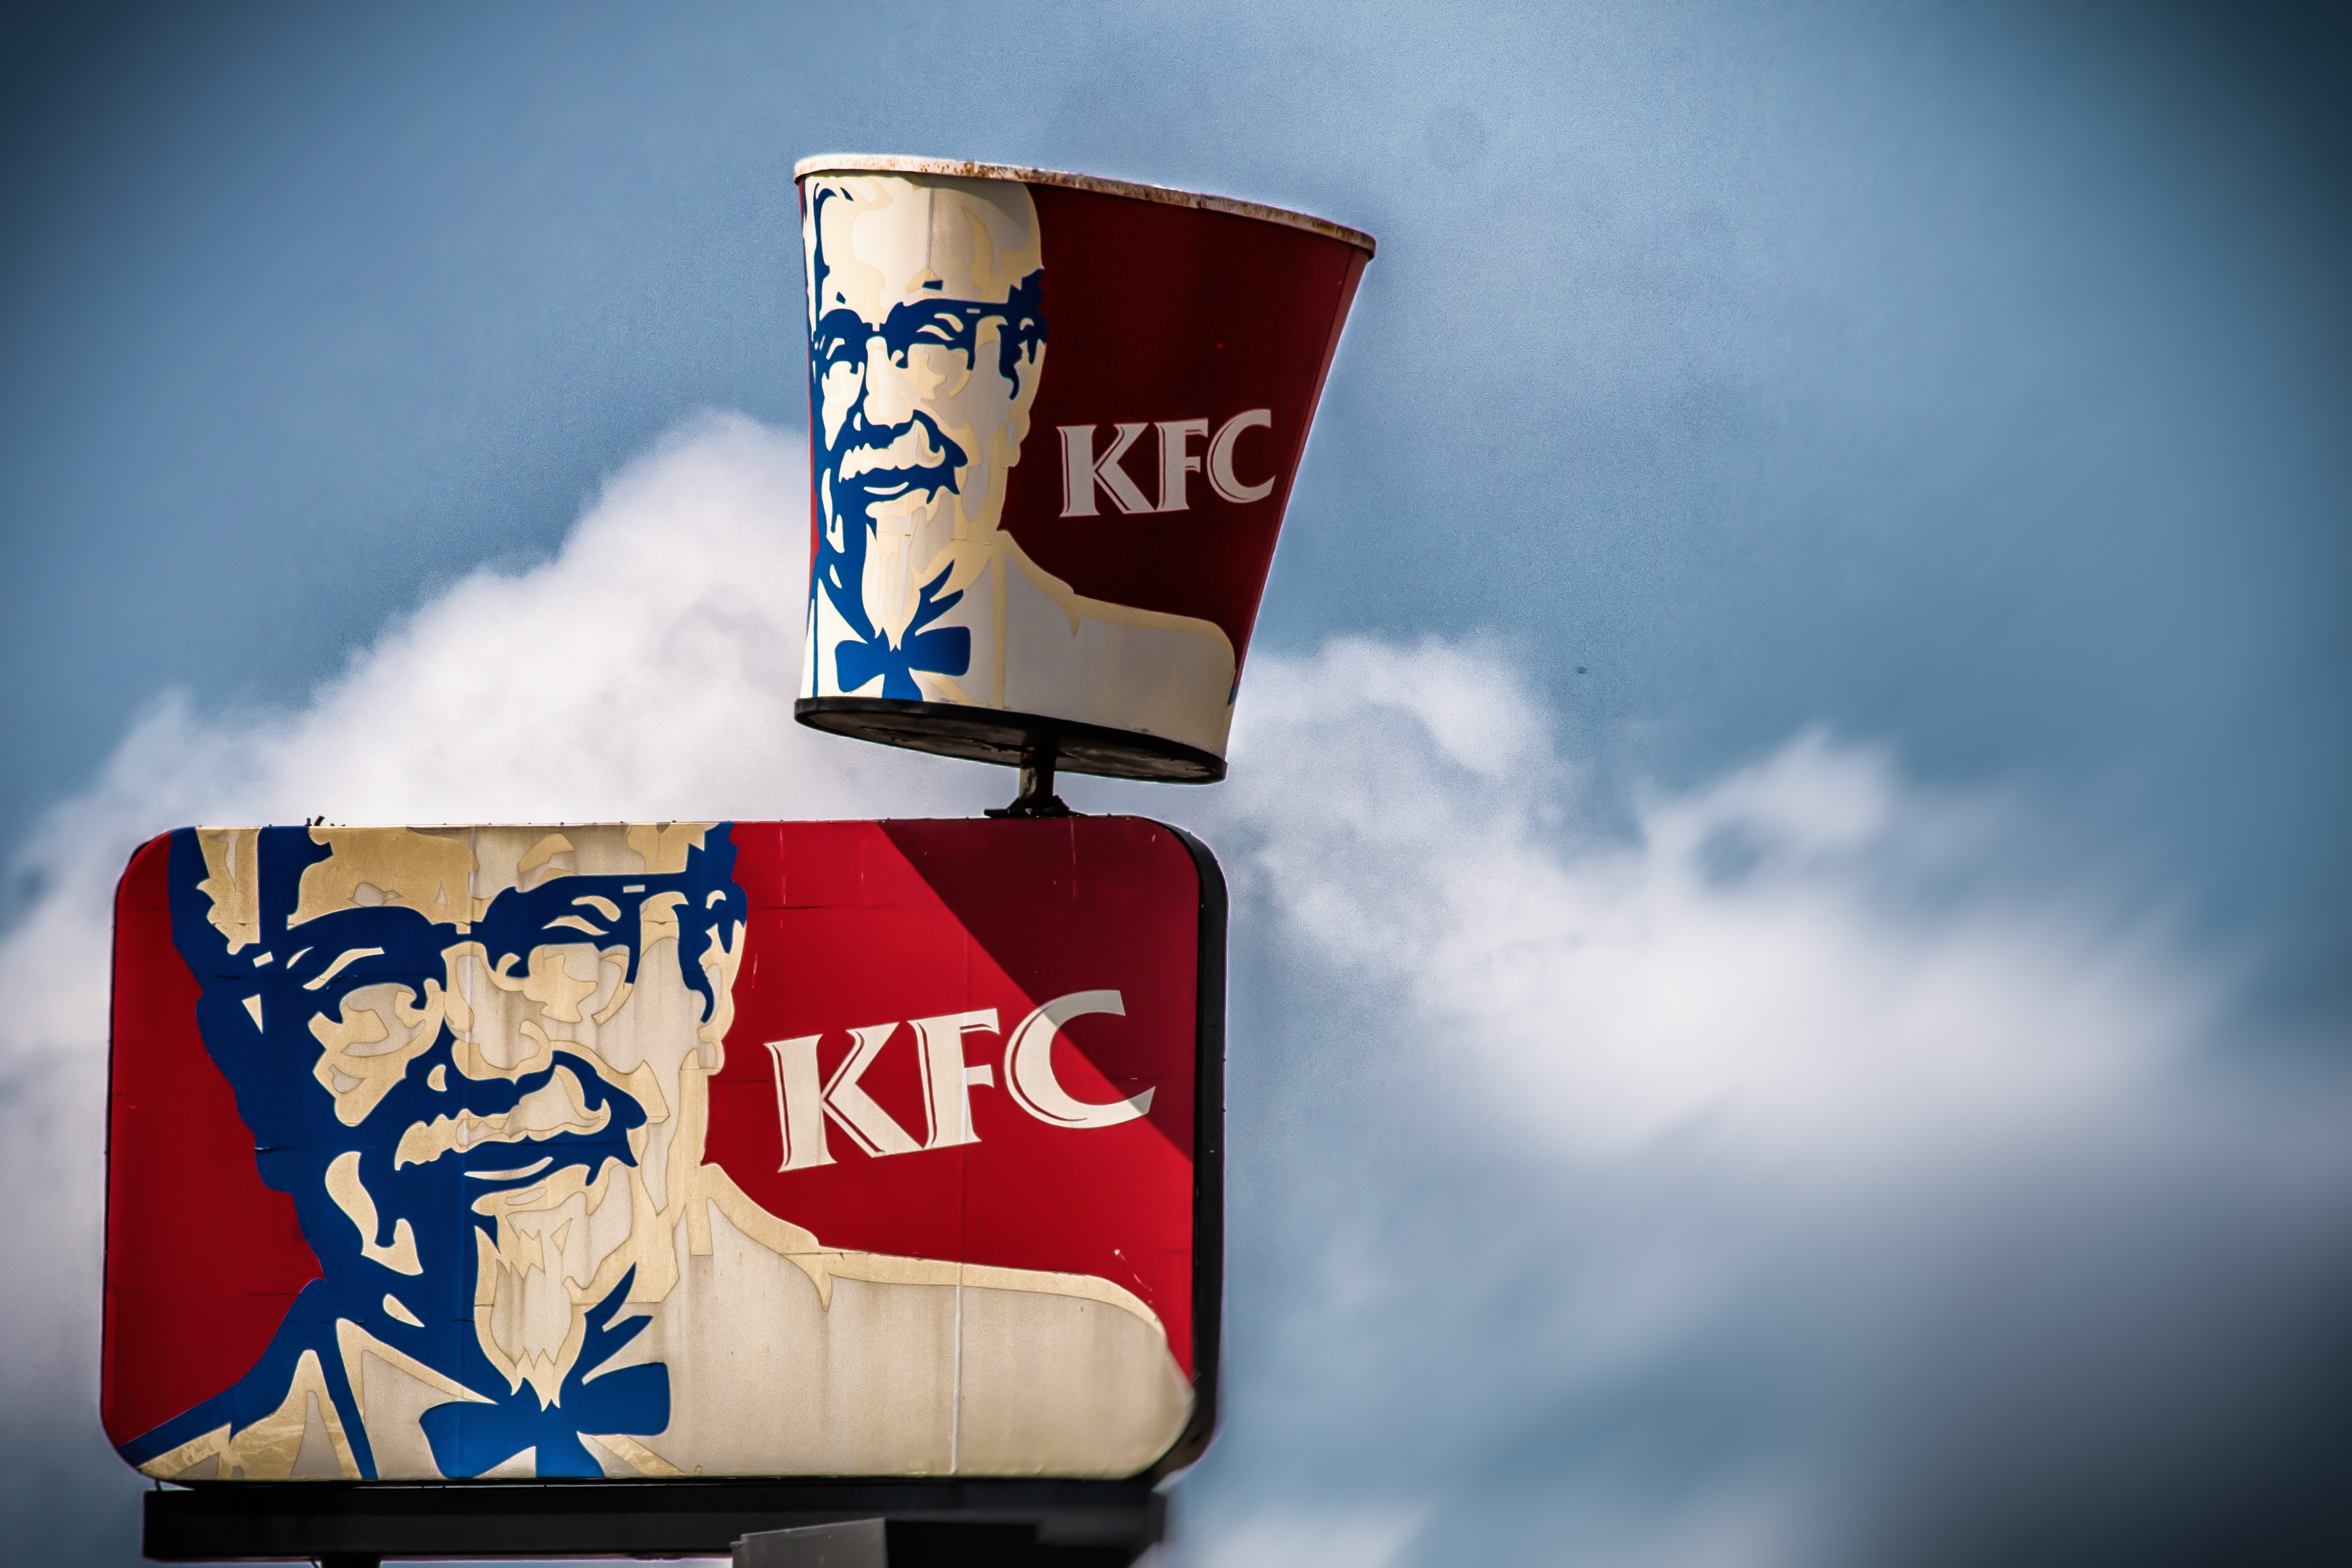 A sign for KFC against a clouded sky